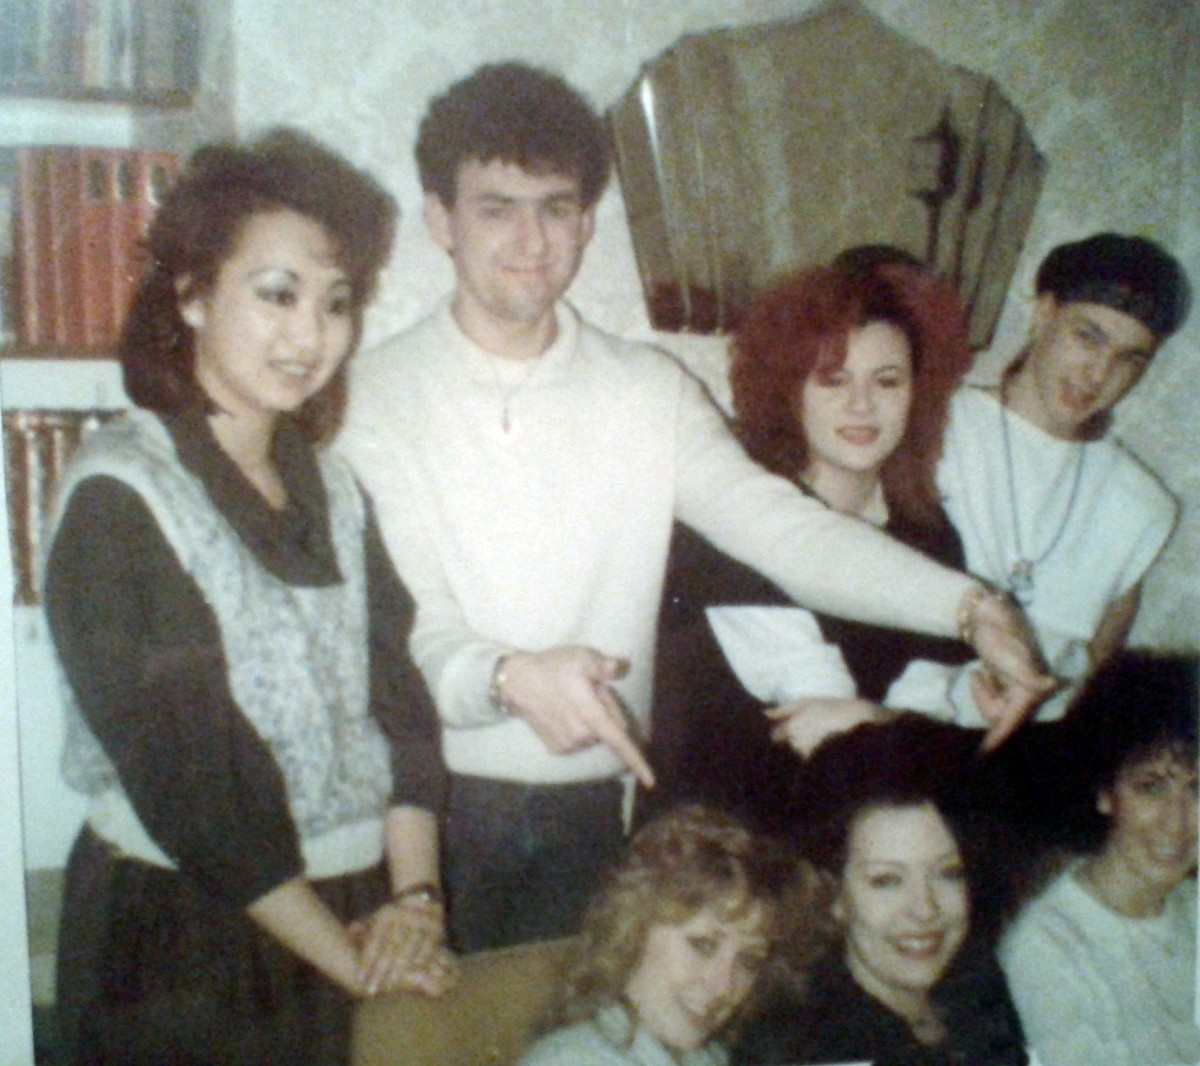 Standing (from left) are Nila; my schoolfriend Tracey's boyfriend Simon; Michelle and Kevin. Seated (from left) are Tracey, me and my schoolfriend Alison.